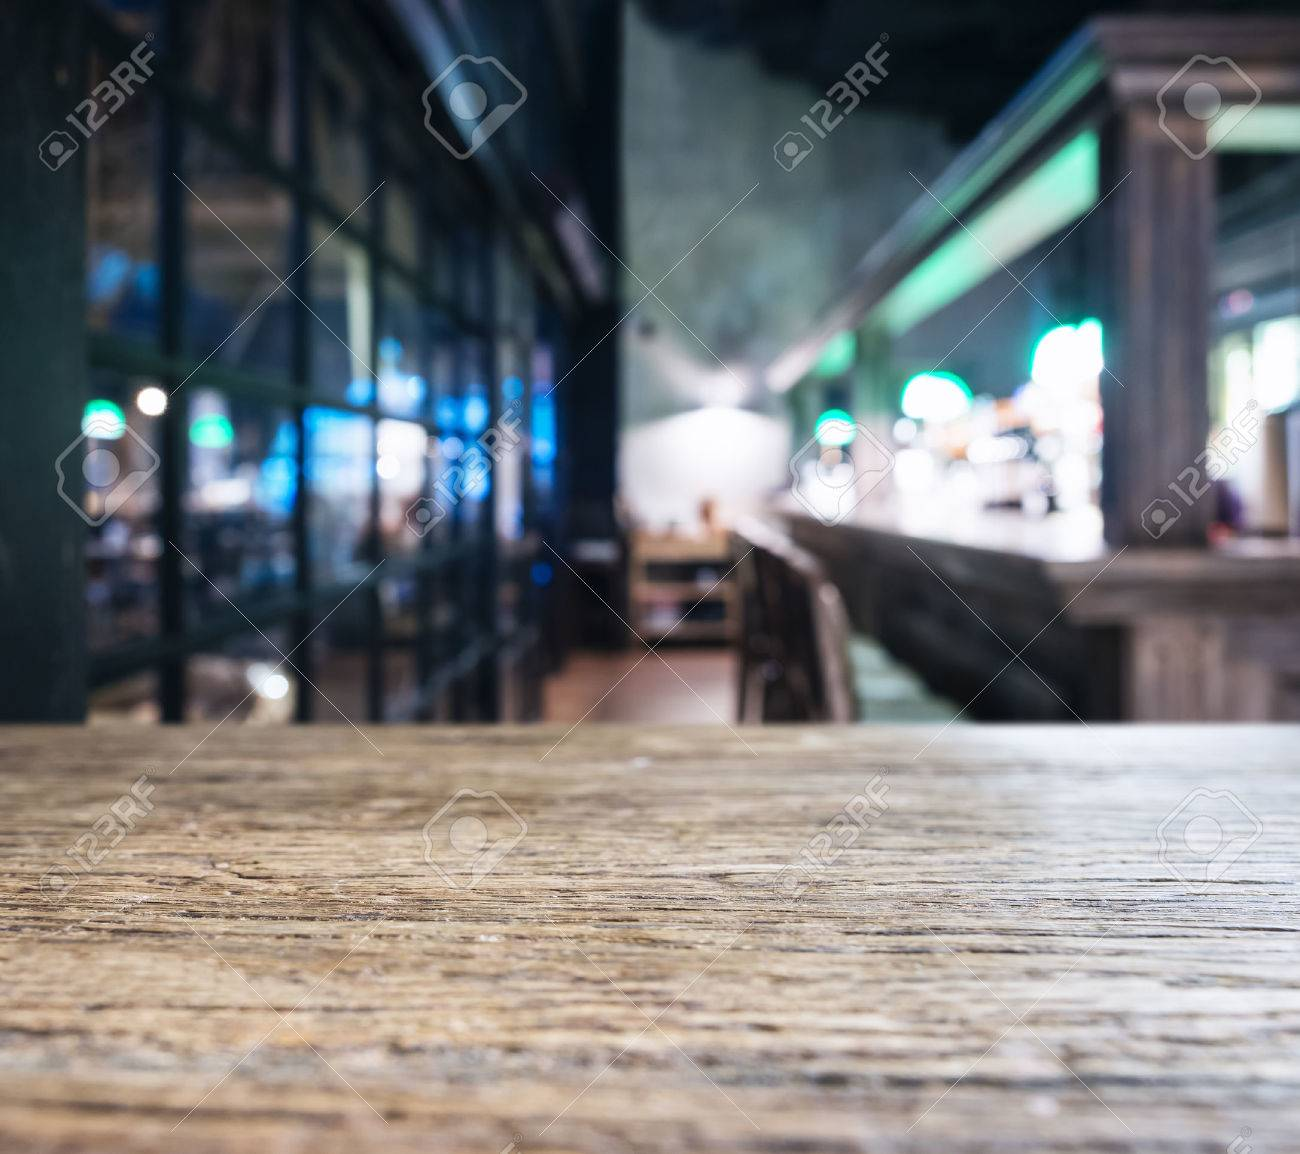 Table Top Counter With Blurred Bar Restaurant Background Stock Photo Picture And Royalty Free Image Image 55875475